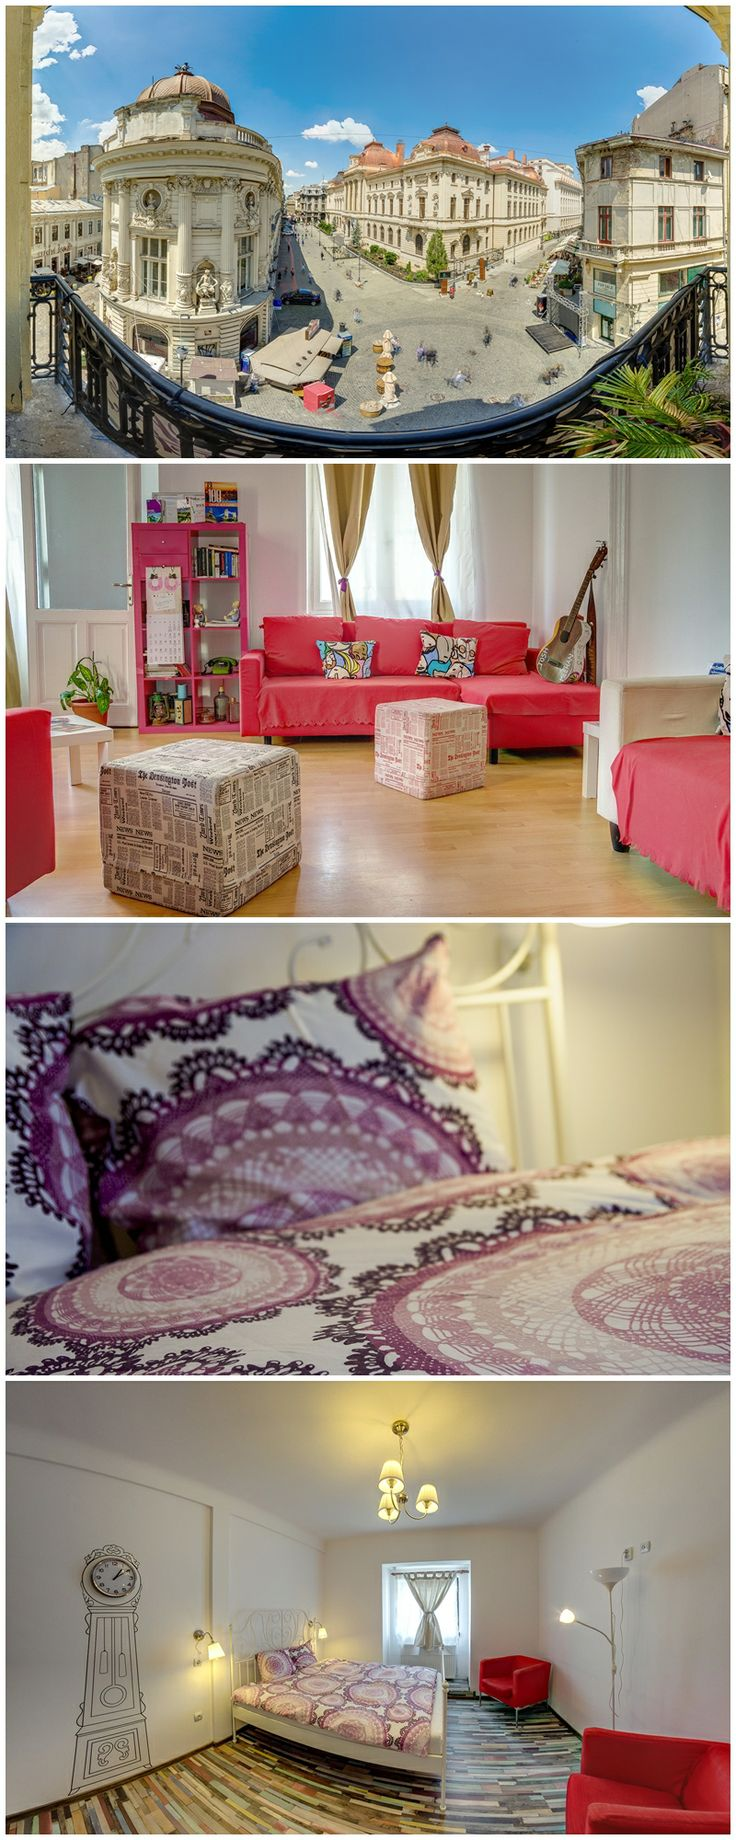 new pics from our place ;) http://www.littlebucharest.ro/